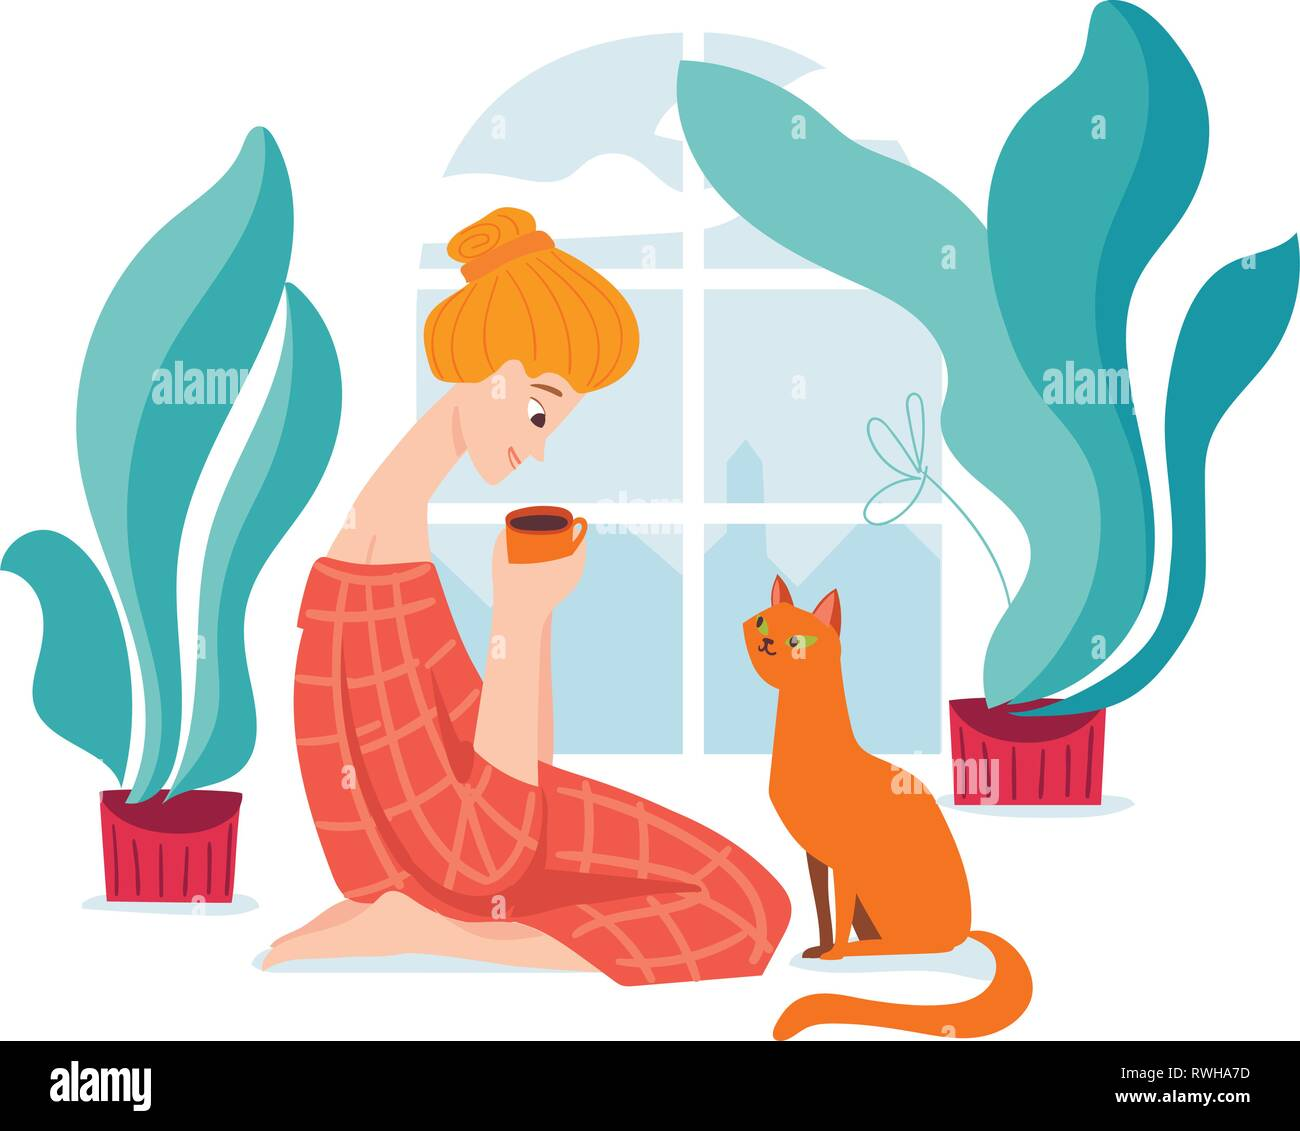 Vector hygge illustration with a woman drink coffe with her cat.  - Stock Image